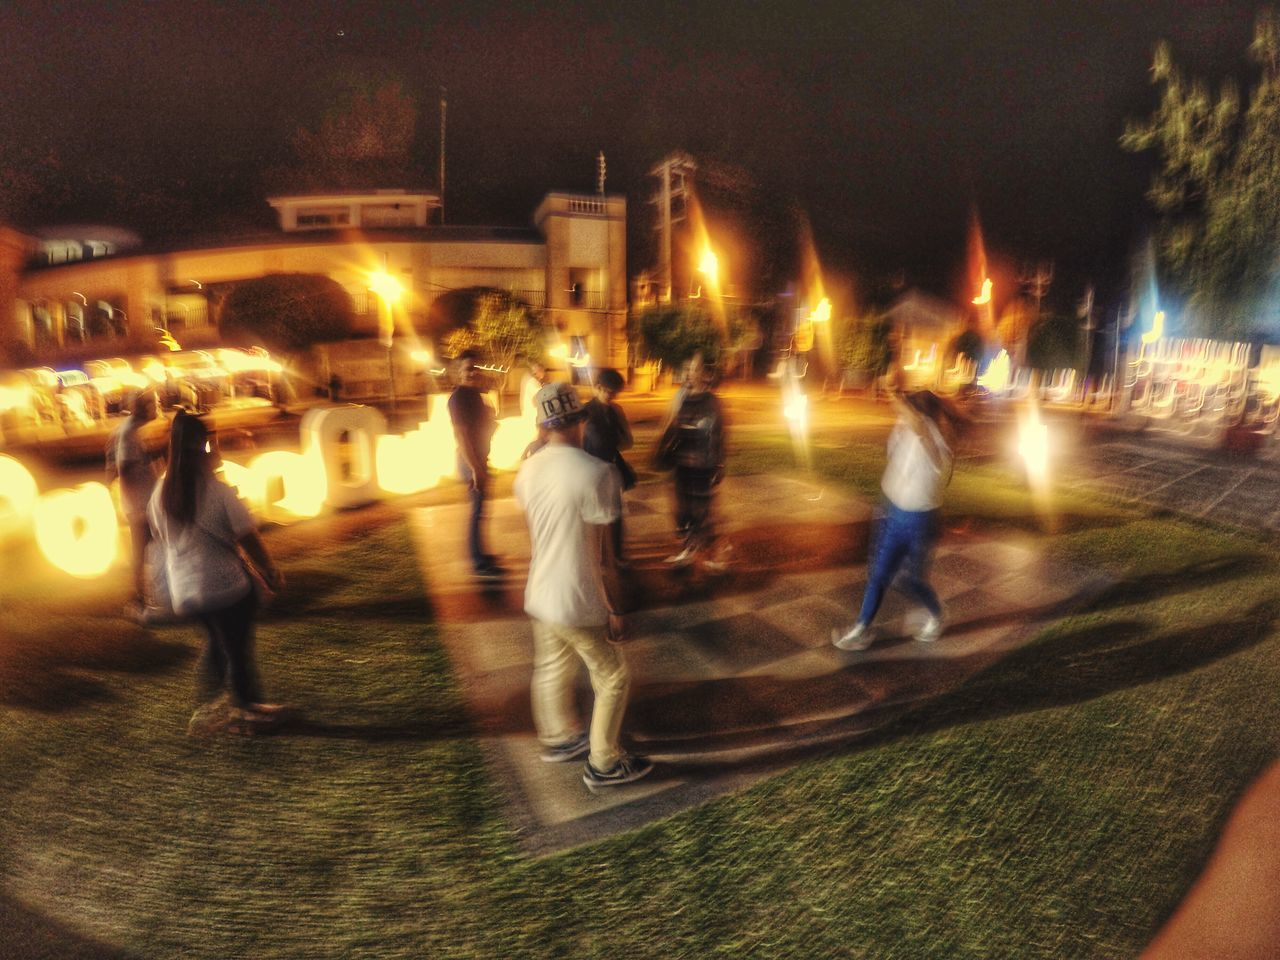 blurred motion, night, real people, motion, illuminated, speed, men, leisure activity, long exposure, lifestyles, large group of people, sport, architecture, built structure, outdoors, women, building exterior, full length, city, sky, people